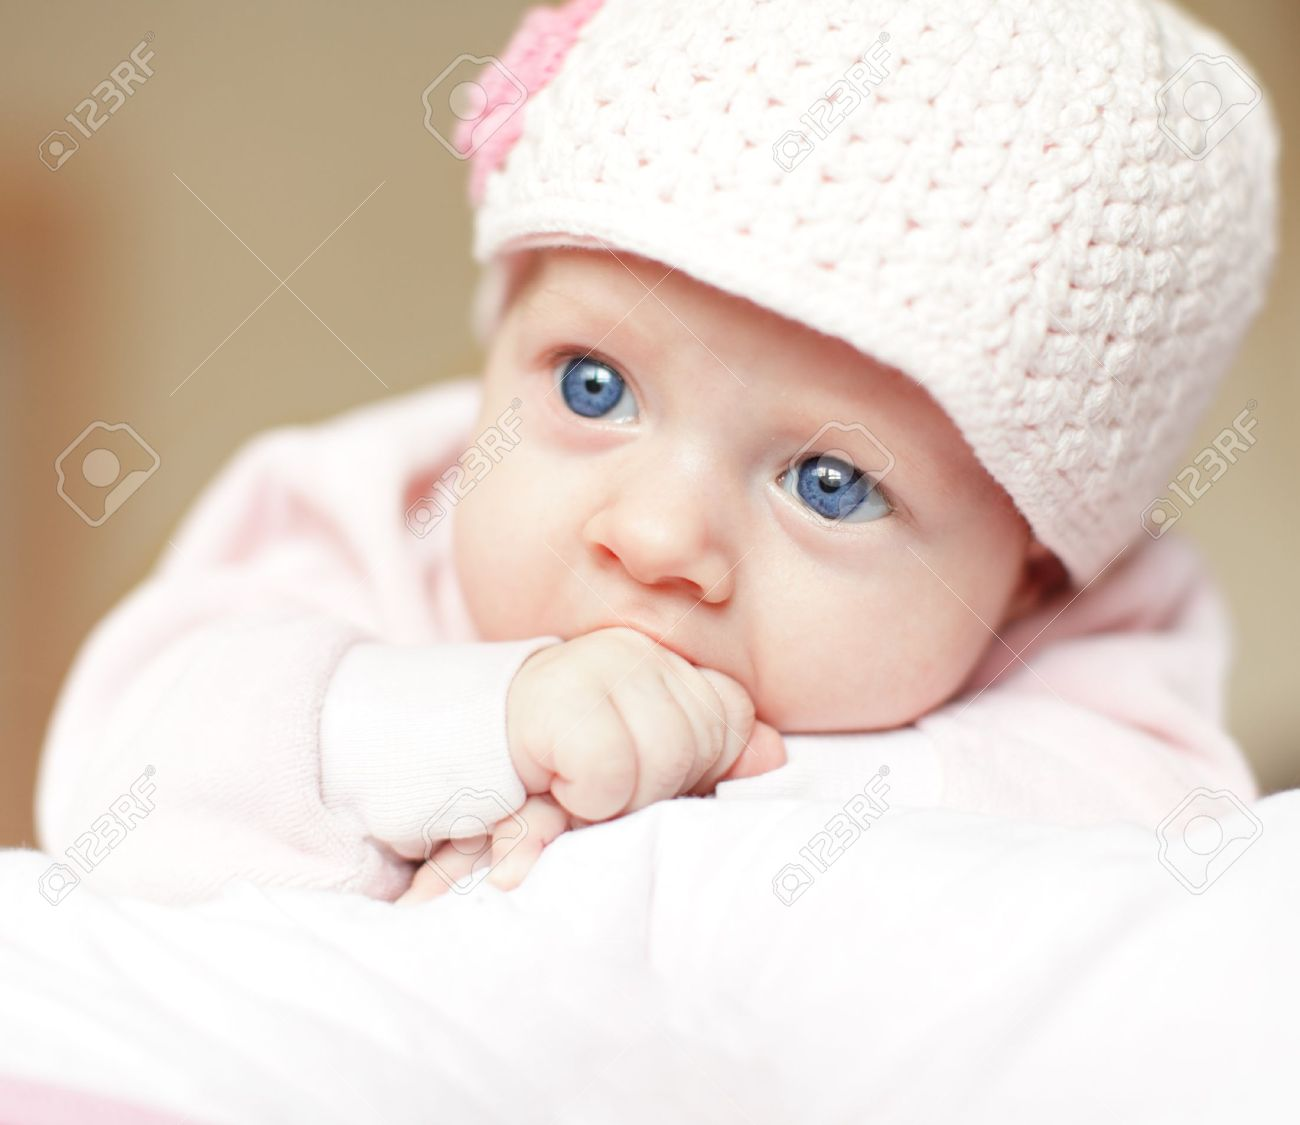 beautiful blue-eyed baby in cap stock photo, picture and royalty